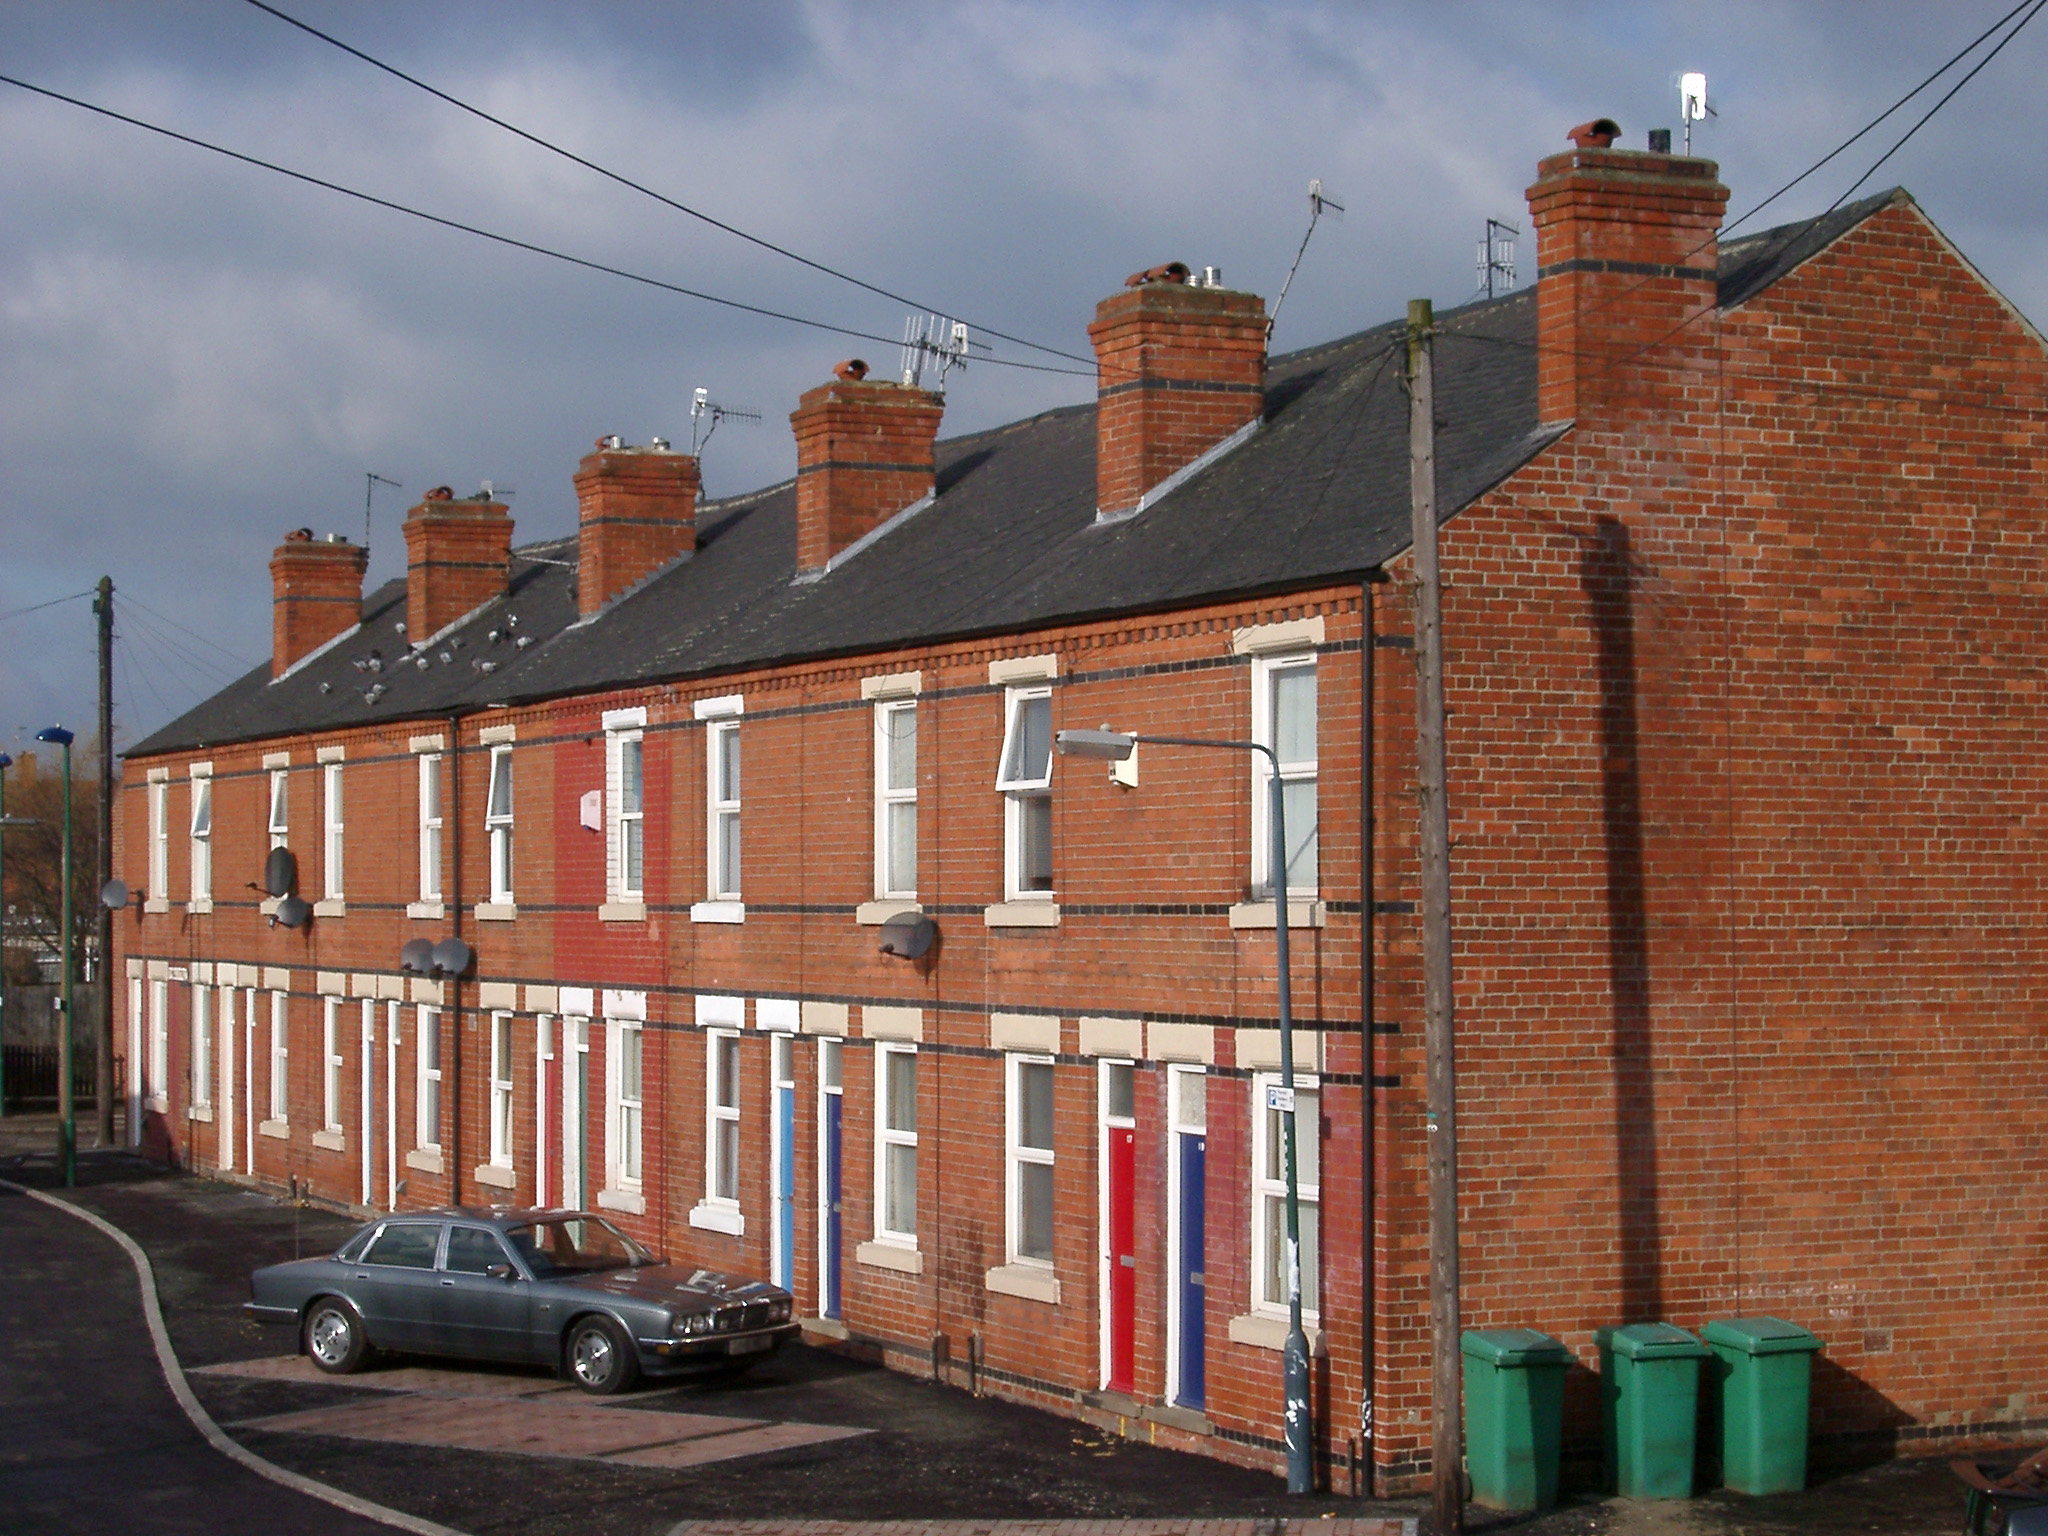 Free stock photo of red brick terraced houses for Terrace homes